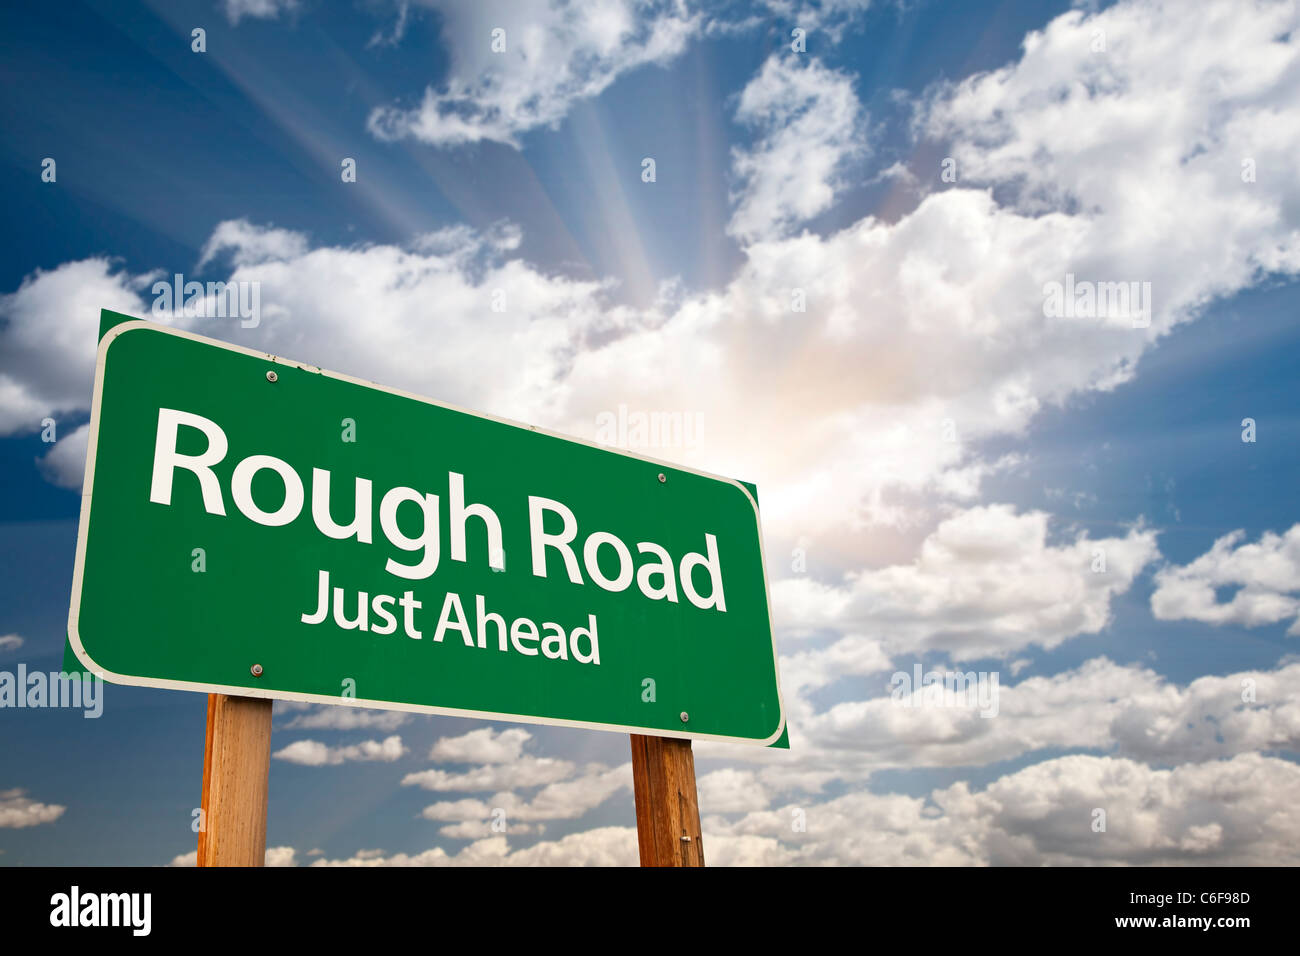 Rough Road, Just Ahead Green Road Sign Over Dramatic Sky, Clouds and Sunburst. - Stock Image